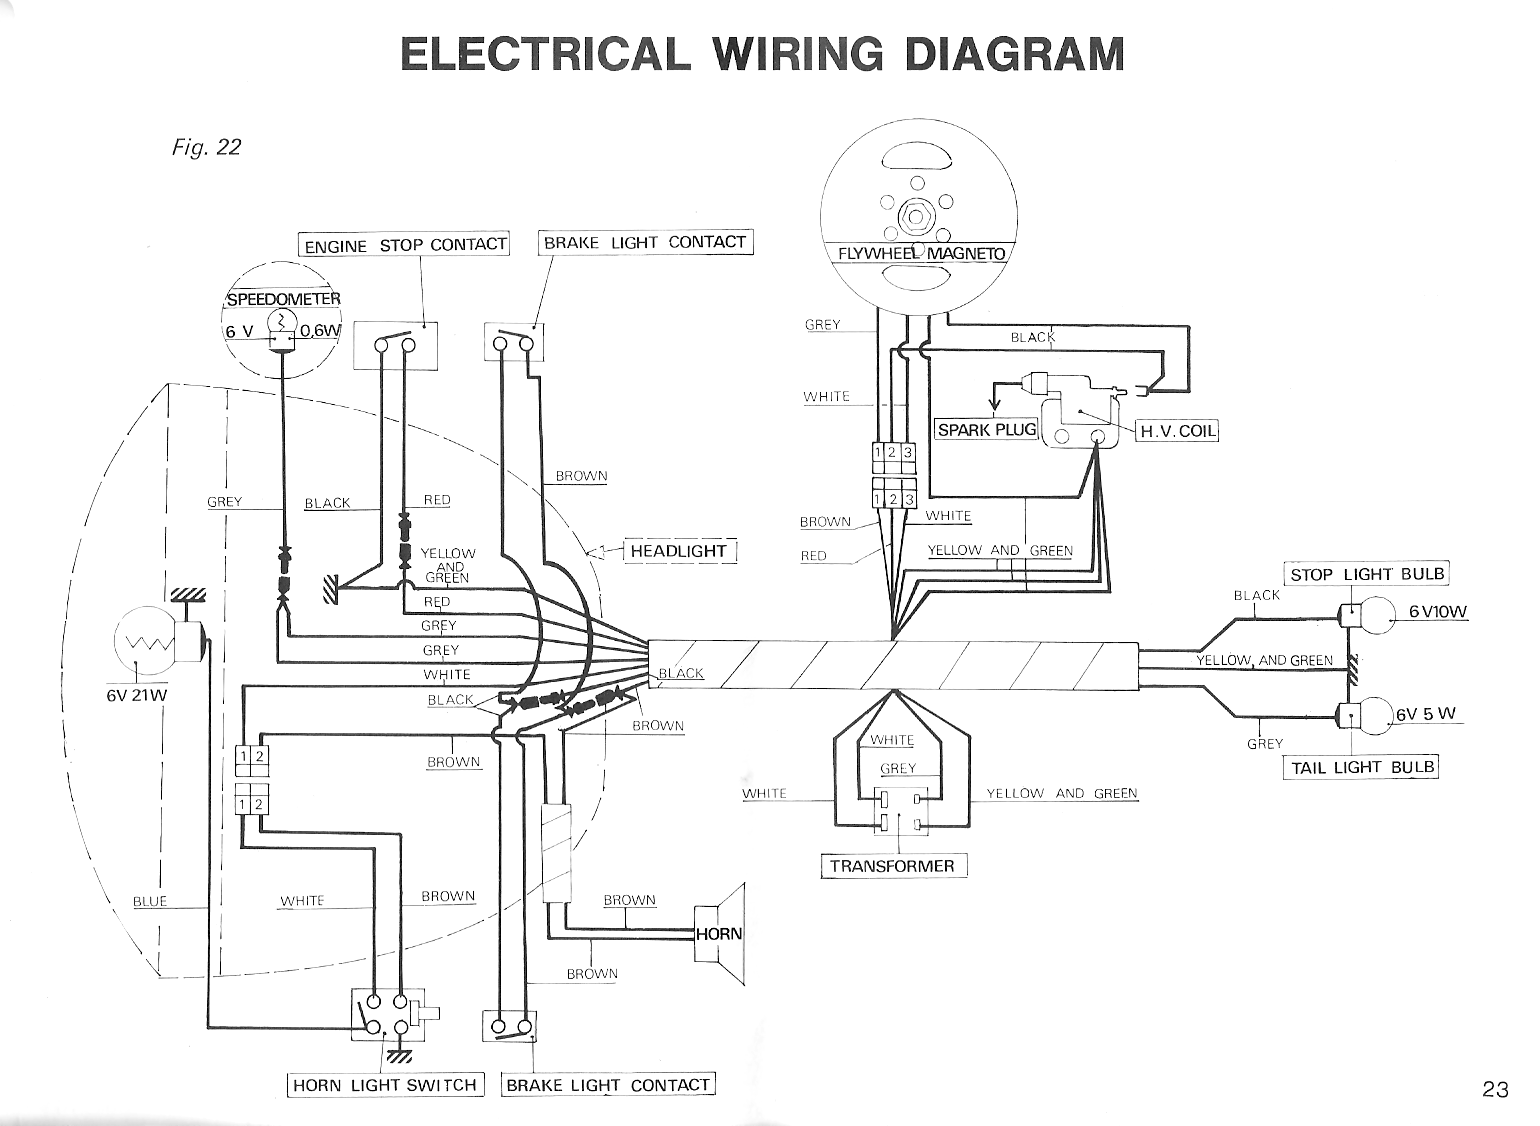 Peugeot Wiring Diagrams Moped Wiki Drawing Electrical 102 1